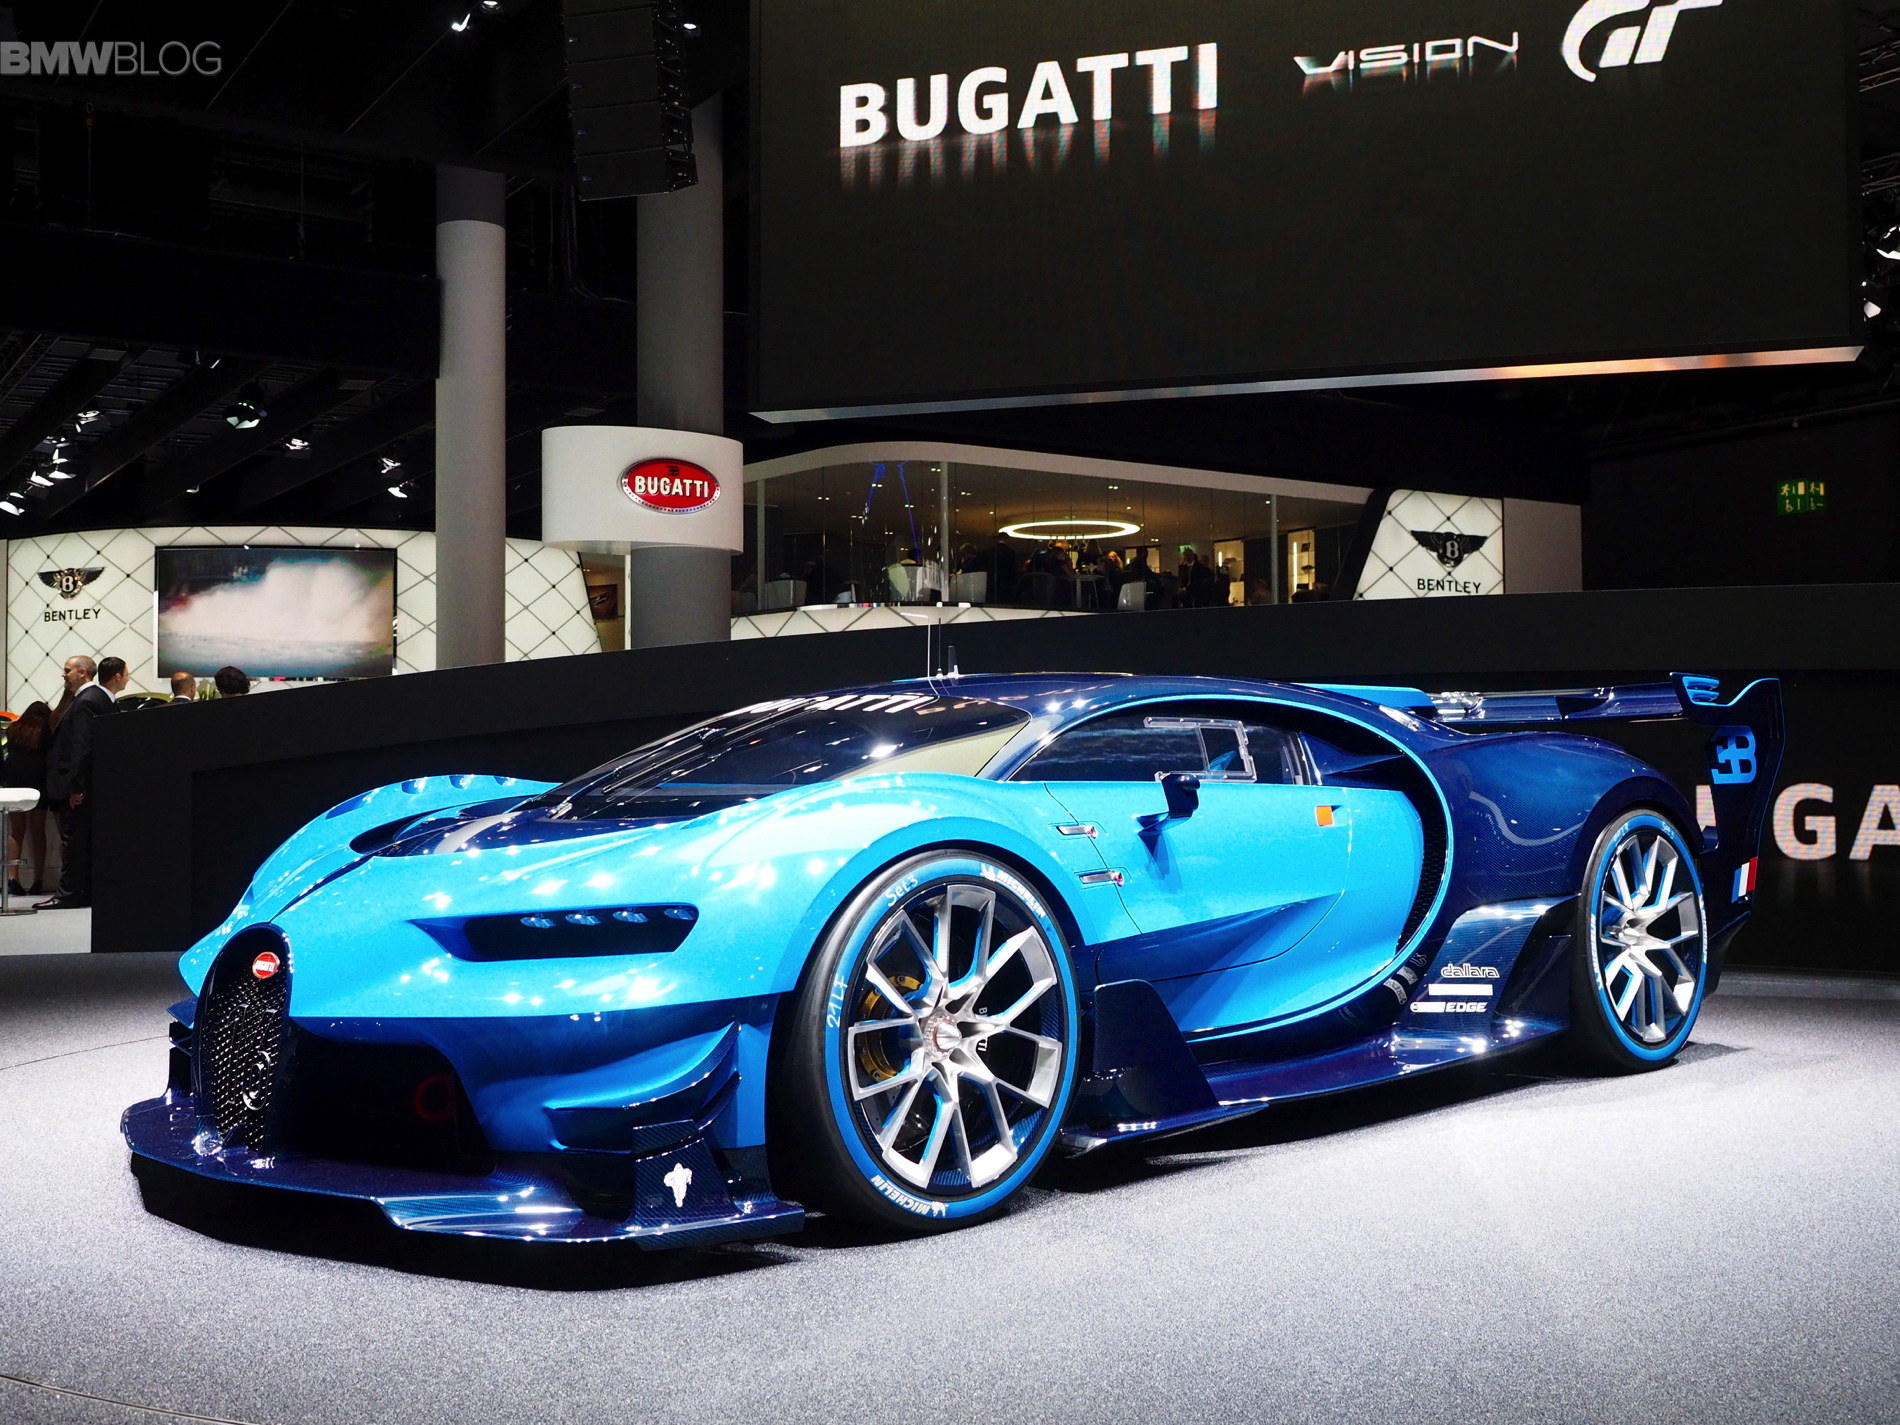 This Is The Bugatti Vision Gran Turismo With 250mph Top Speed